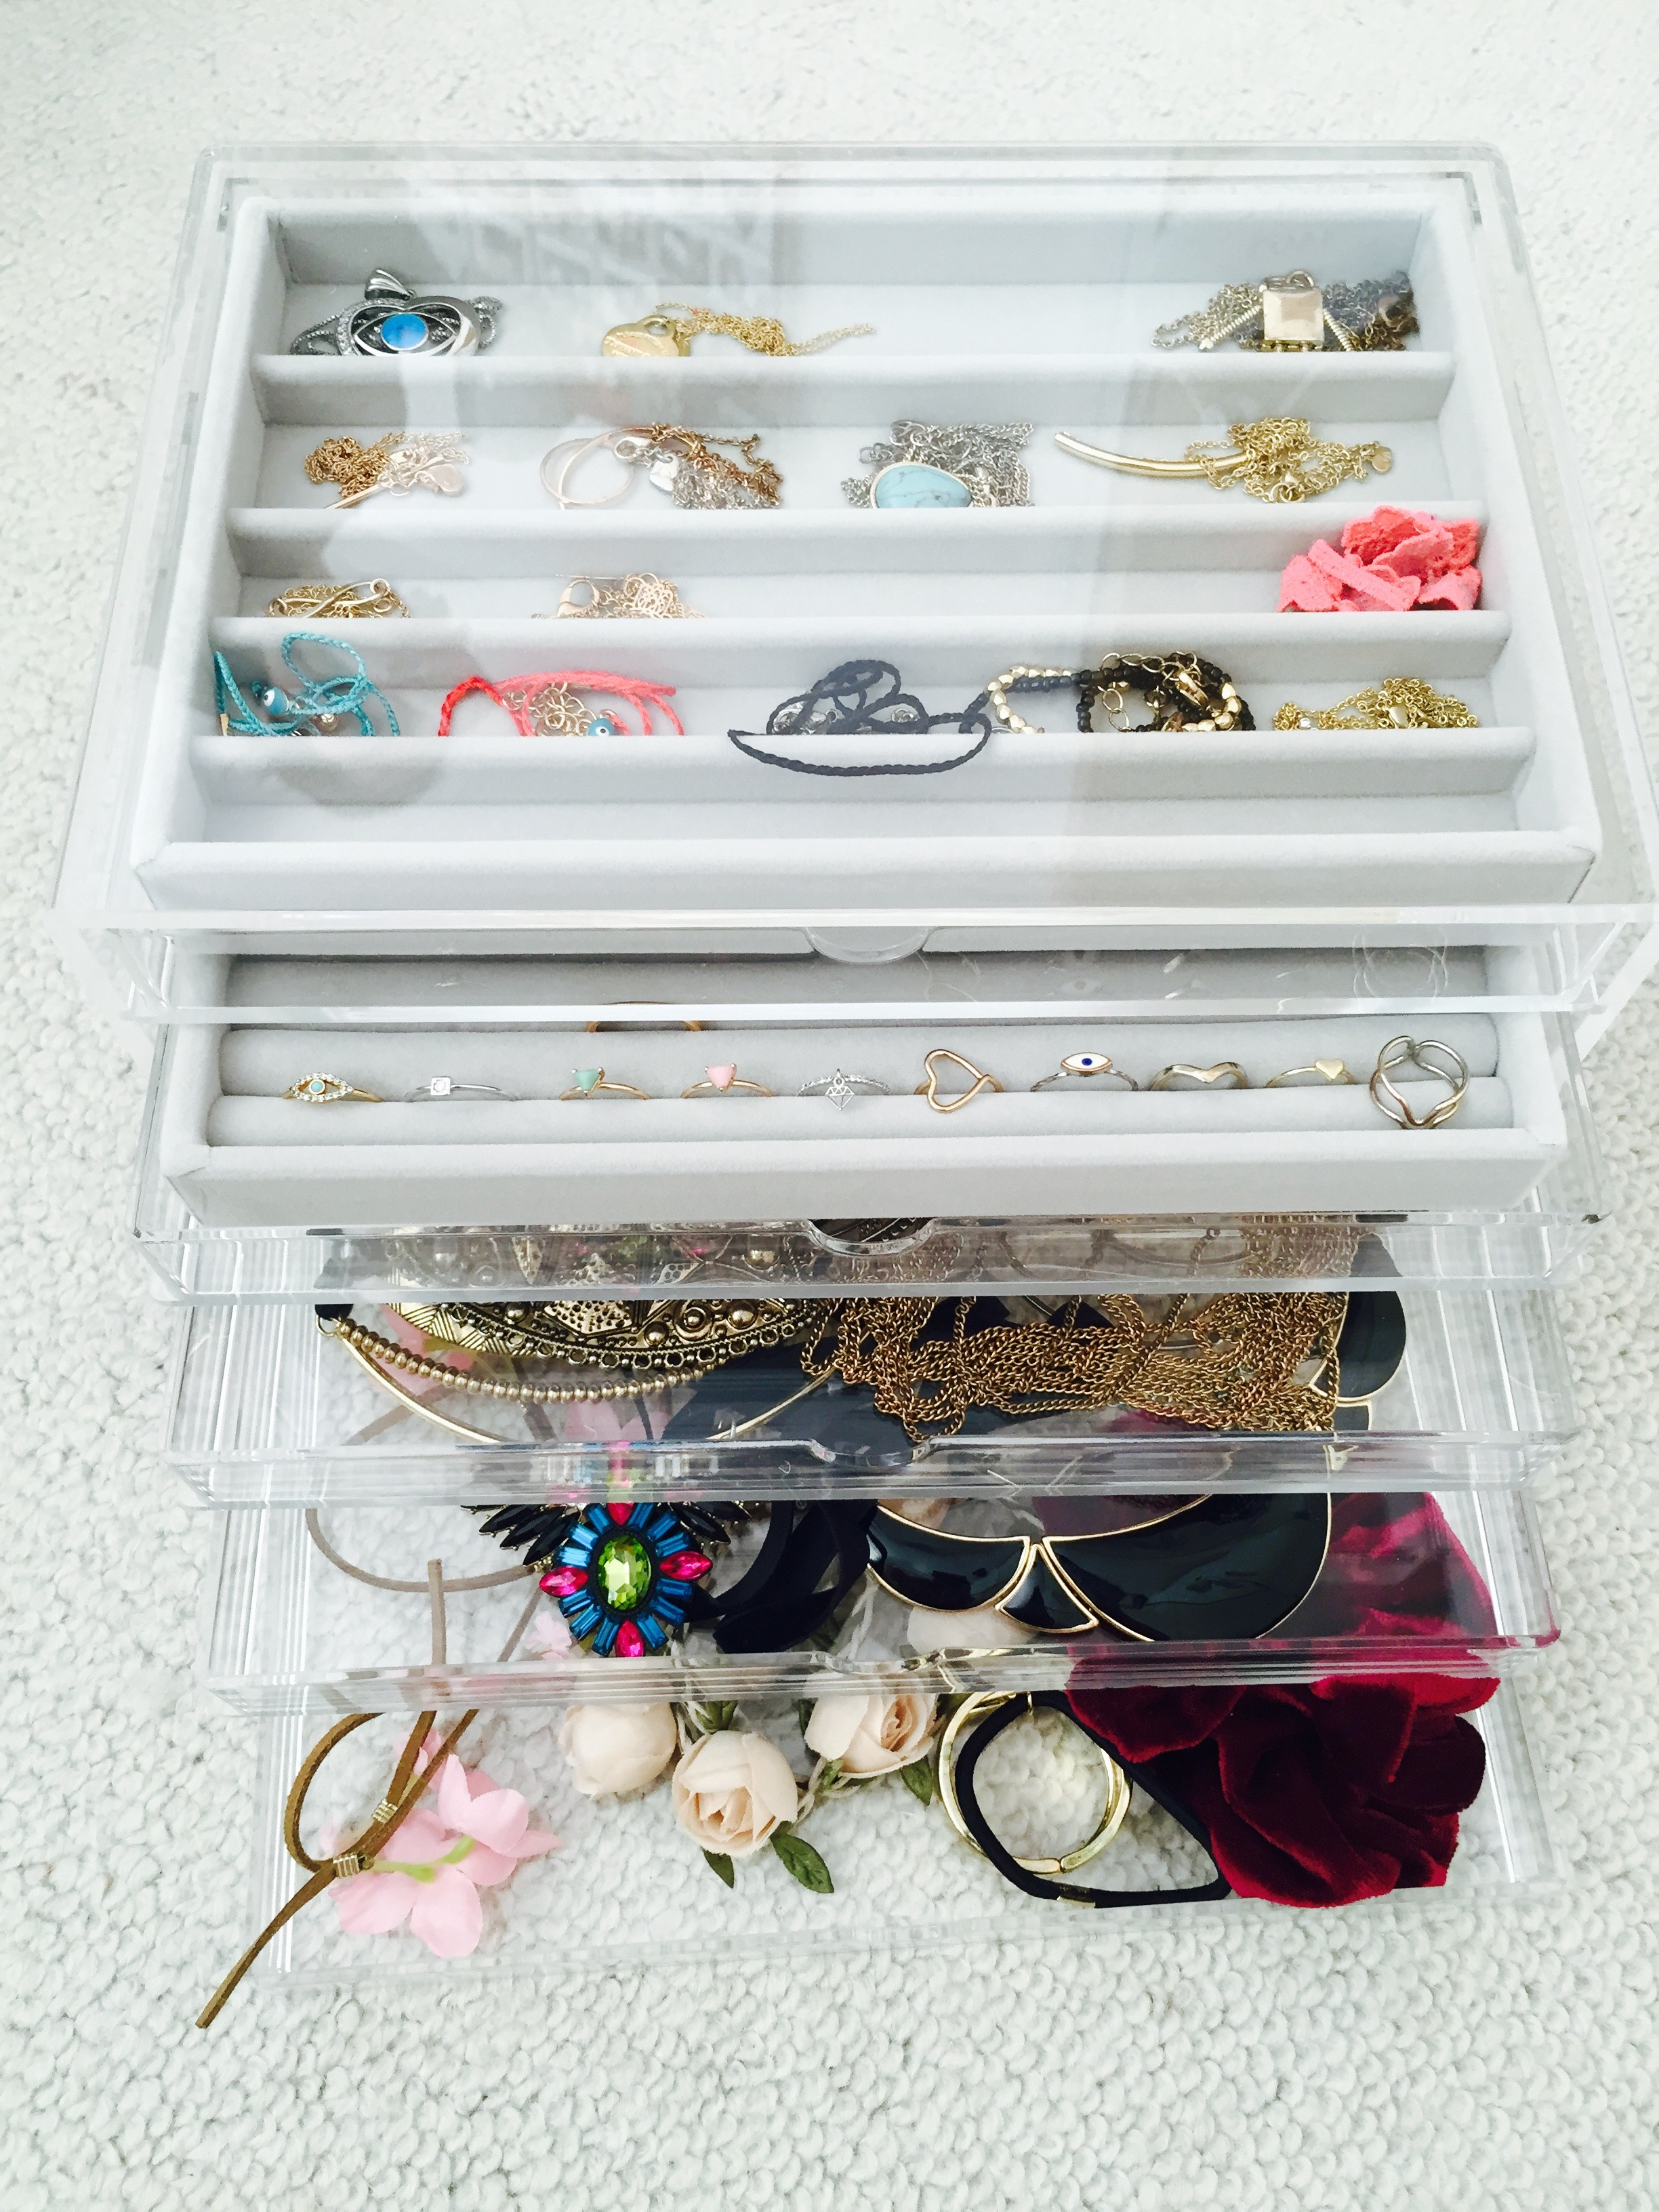 fee9d57c6 The jewellery trays are perfect for storing smaller items and ensures that  your necklaces don't get tangled up! I absolutely despise having to spend  ages ...